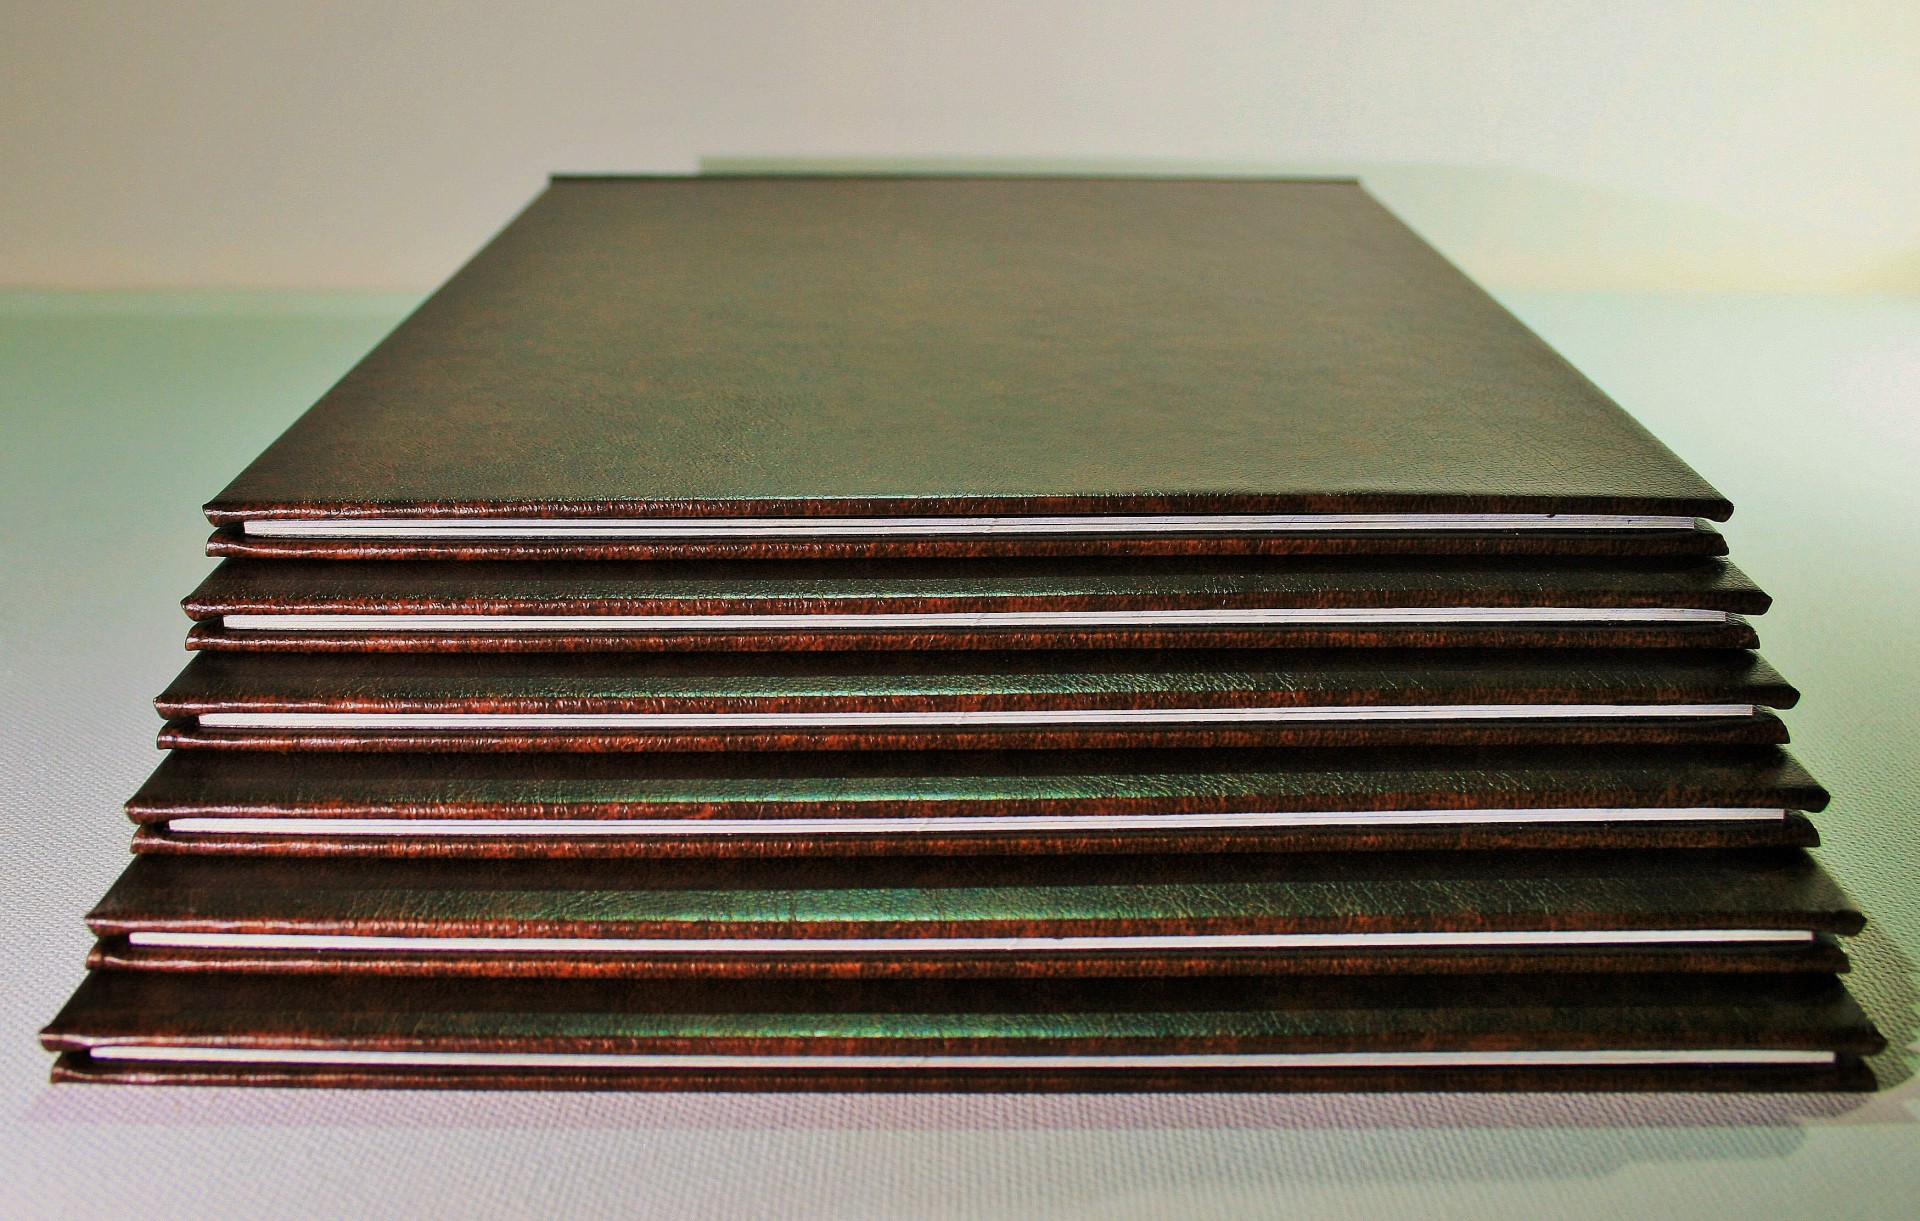 Stack Of Books Free Stock Photo - Public Domain Pictures